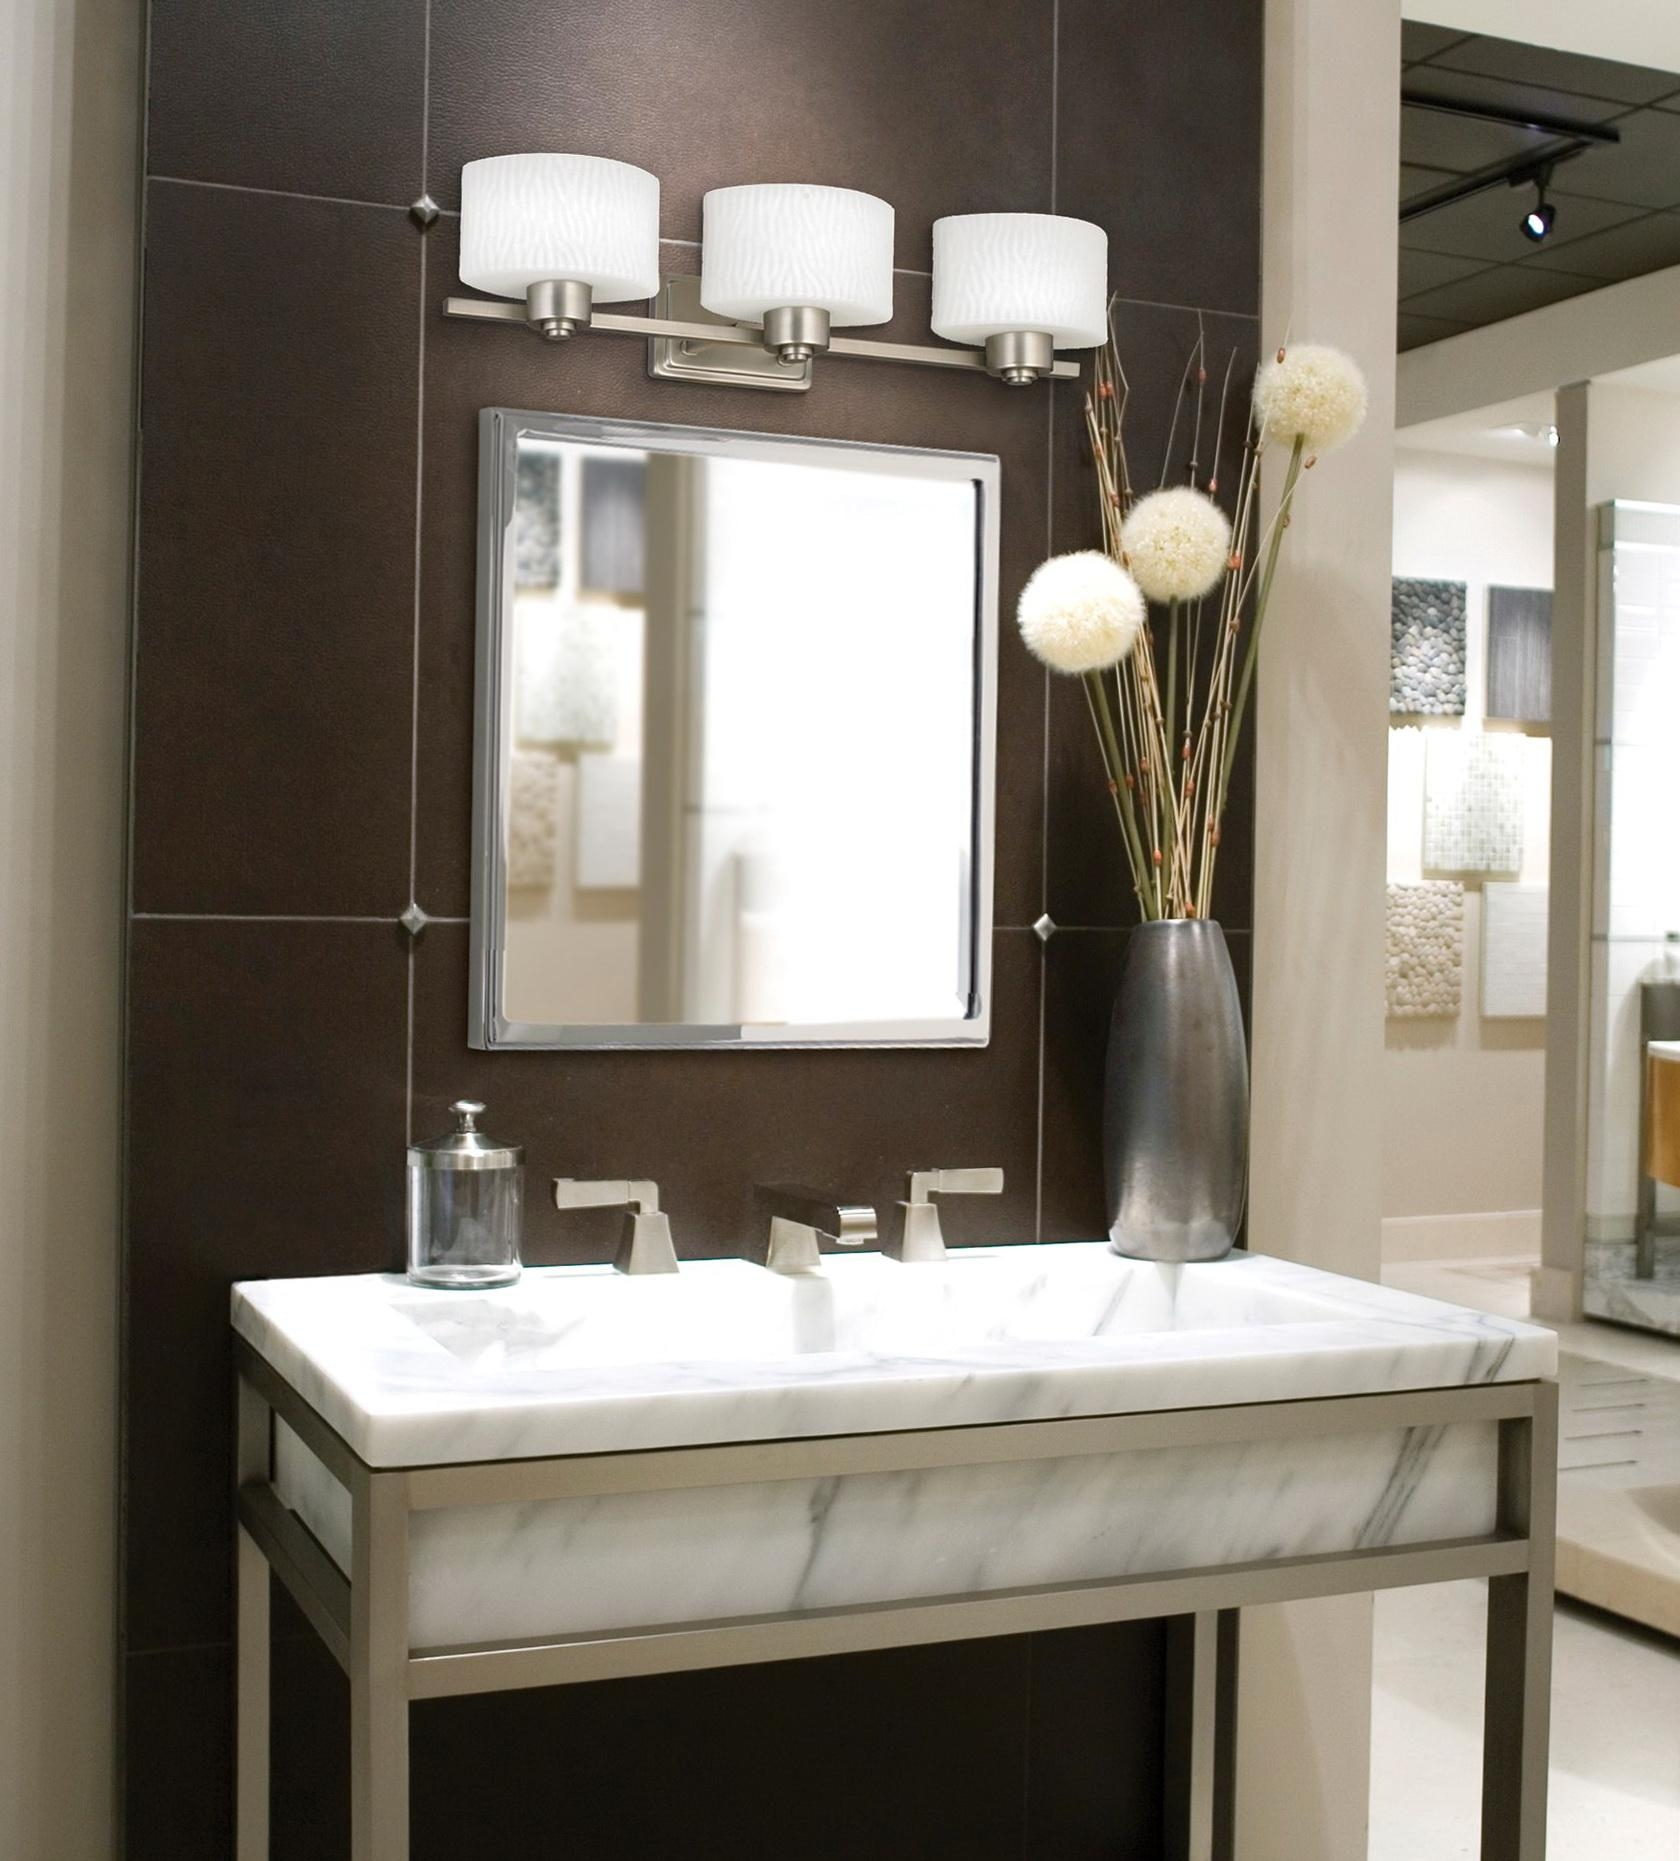 Wondrous Bathroom Vanity Mirrors For Com Ideas Brushed Nickel In Lights For Bathroom Mirrors (Image 20 of 20)